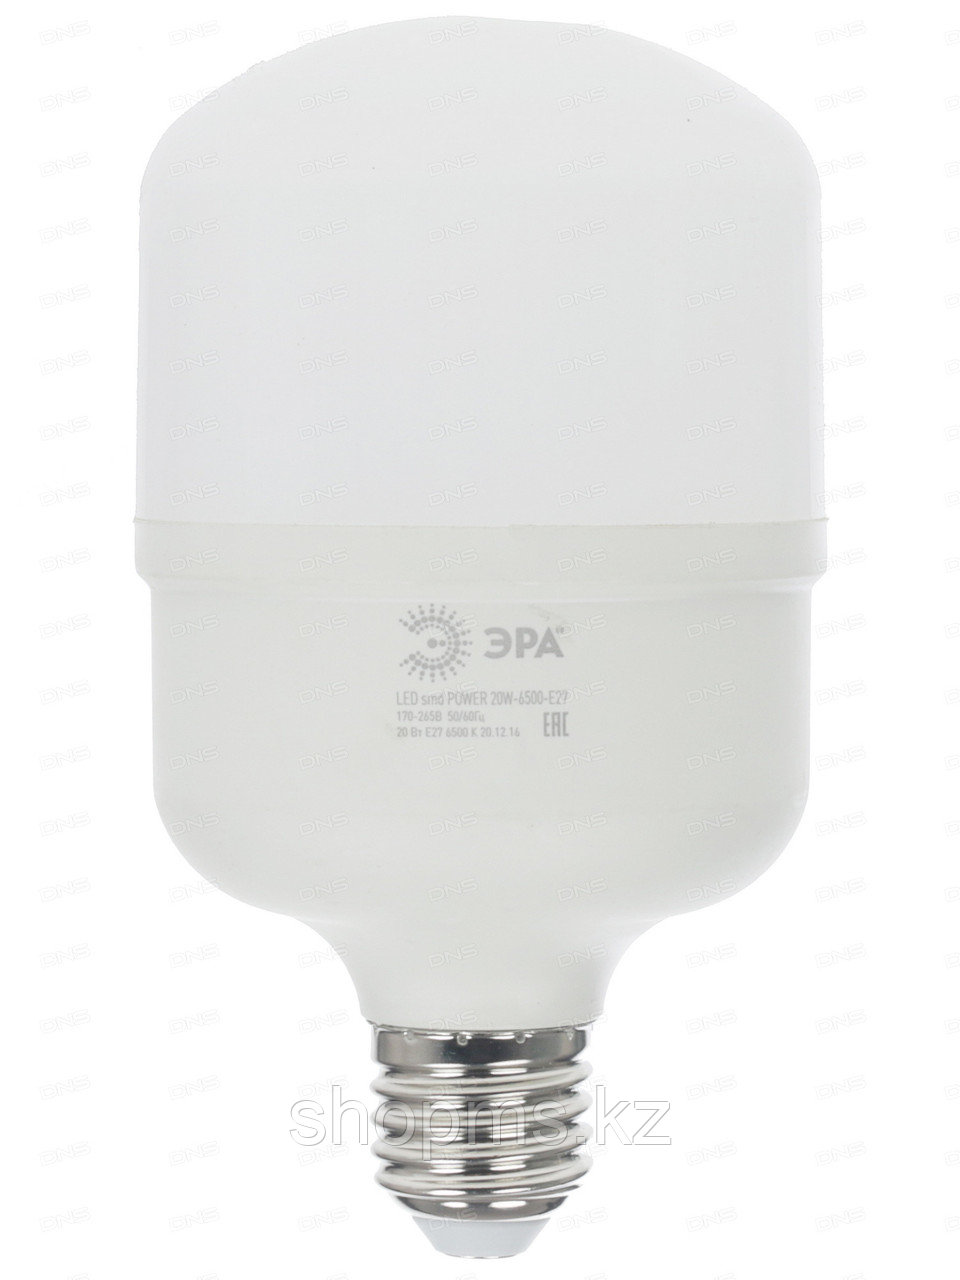 Лампа св/диод ЭРА LED smd POWER 20w-6500-E27